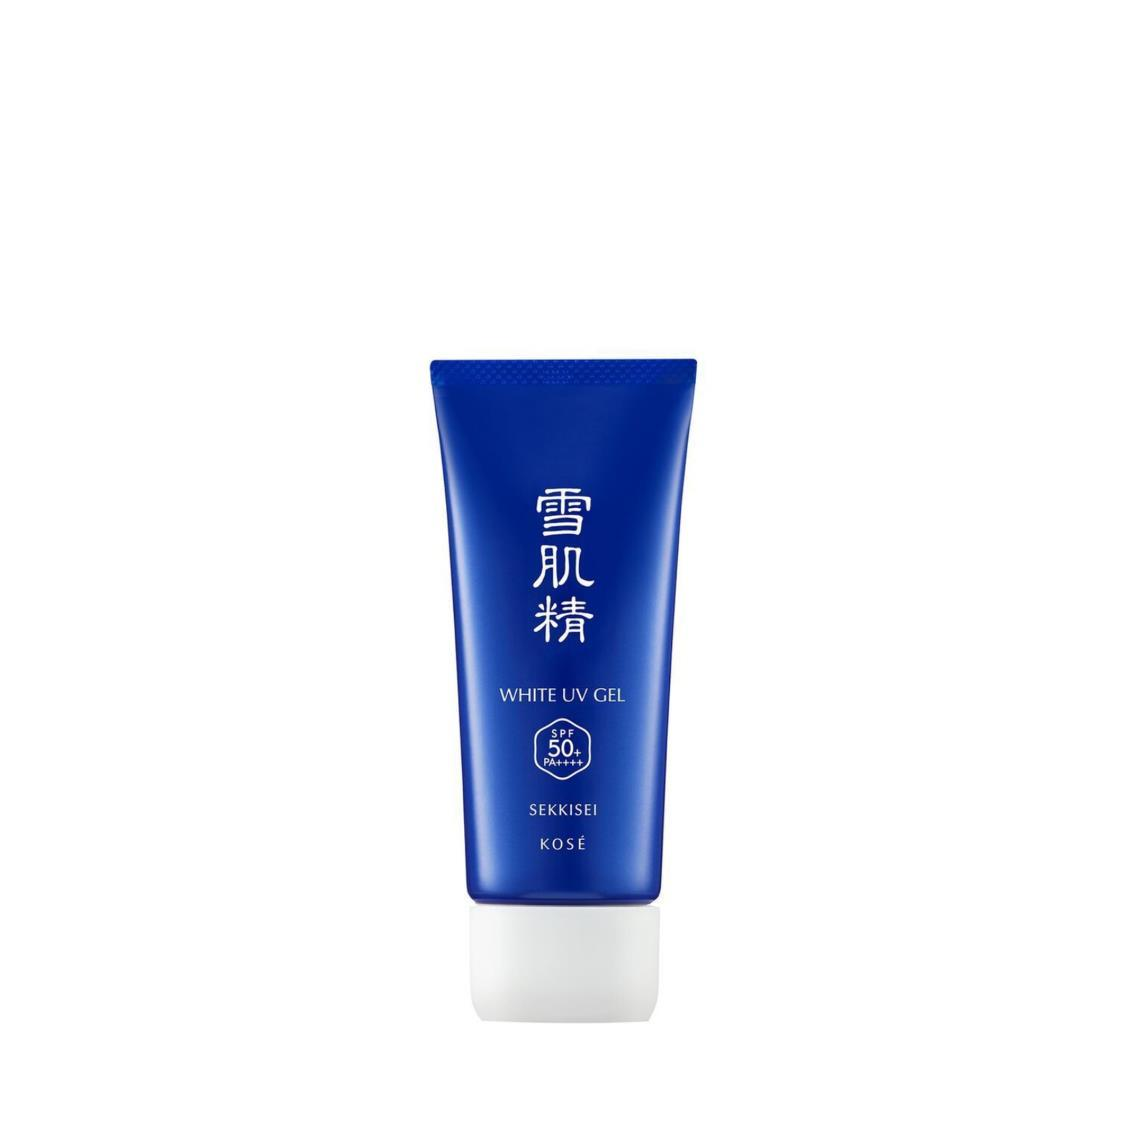 Sekkisei White UV Gel SPF50PA 80g